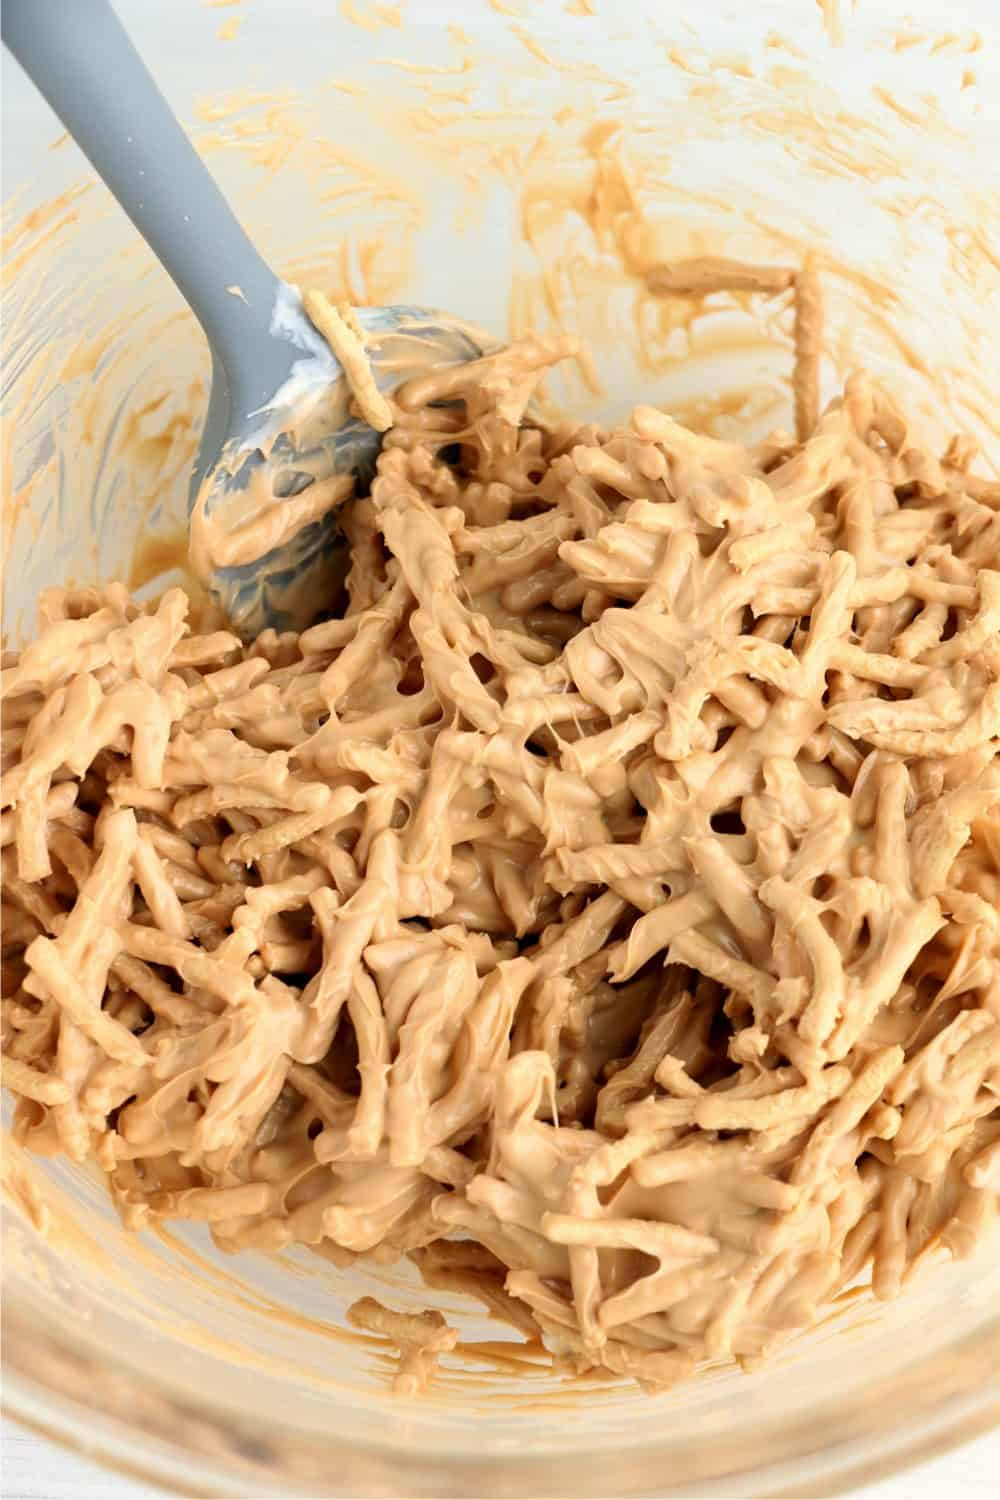 Chow mein noodles mixed into melted butterscotch chips and white bark